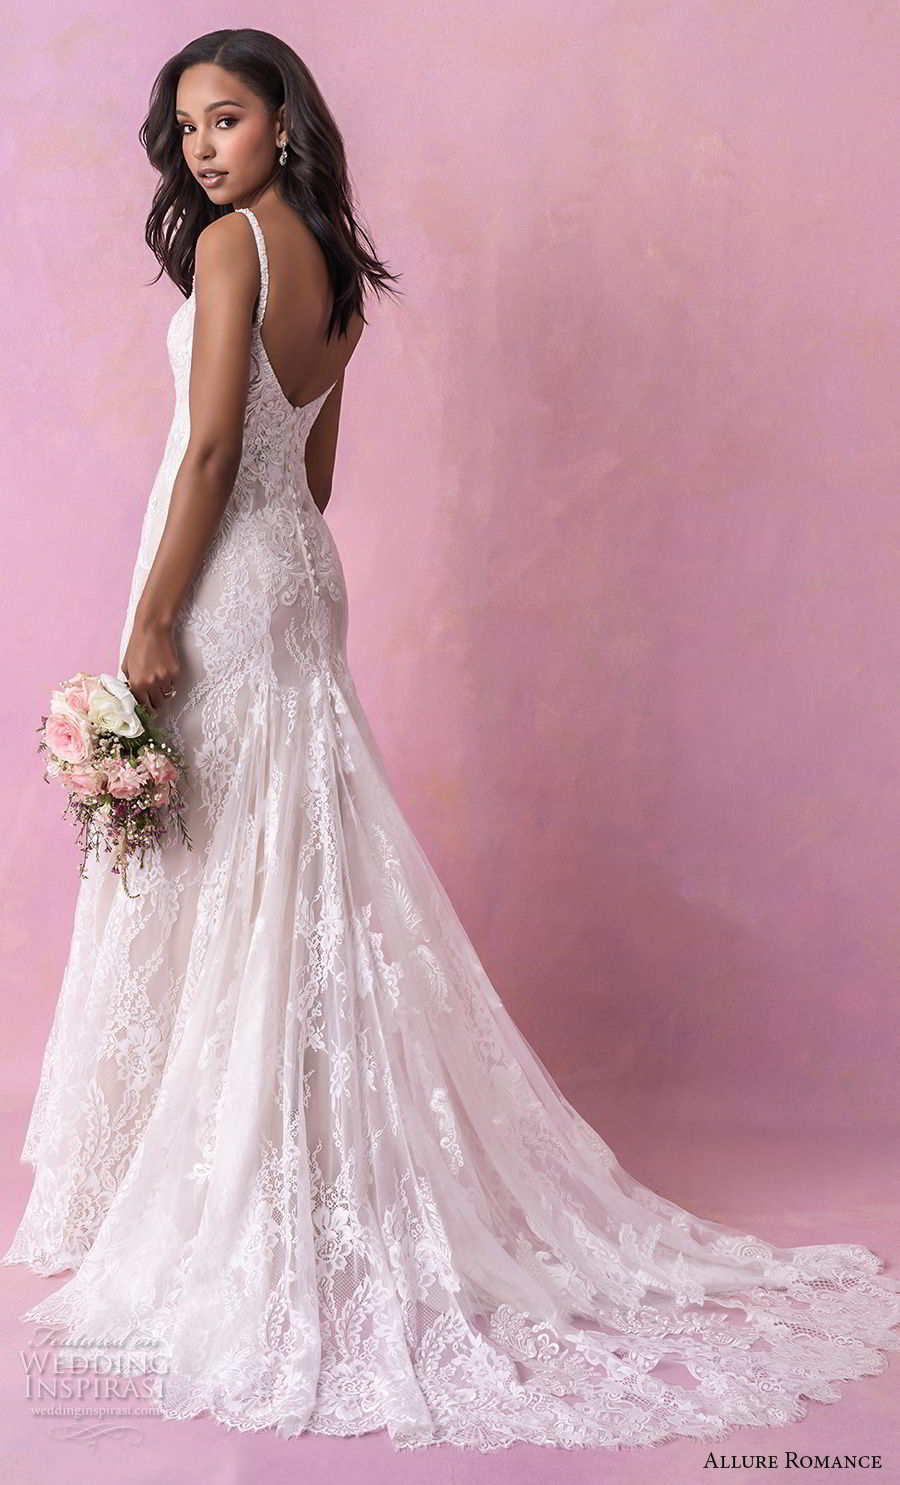 Allure Romance Fall 2018 Wedding Dresses